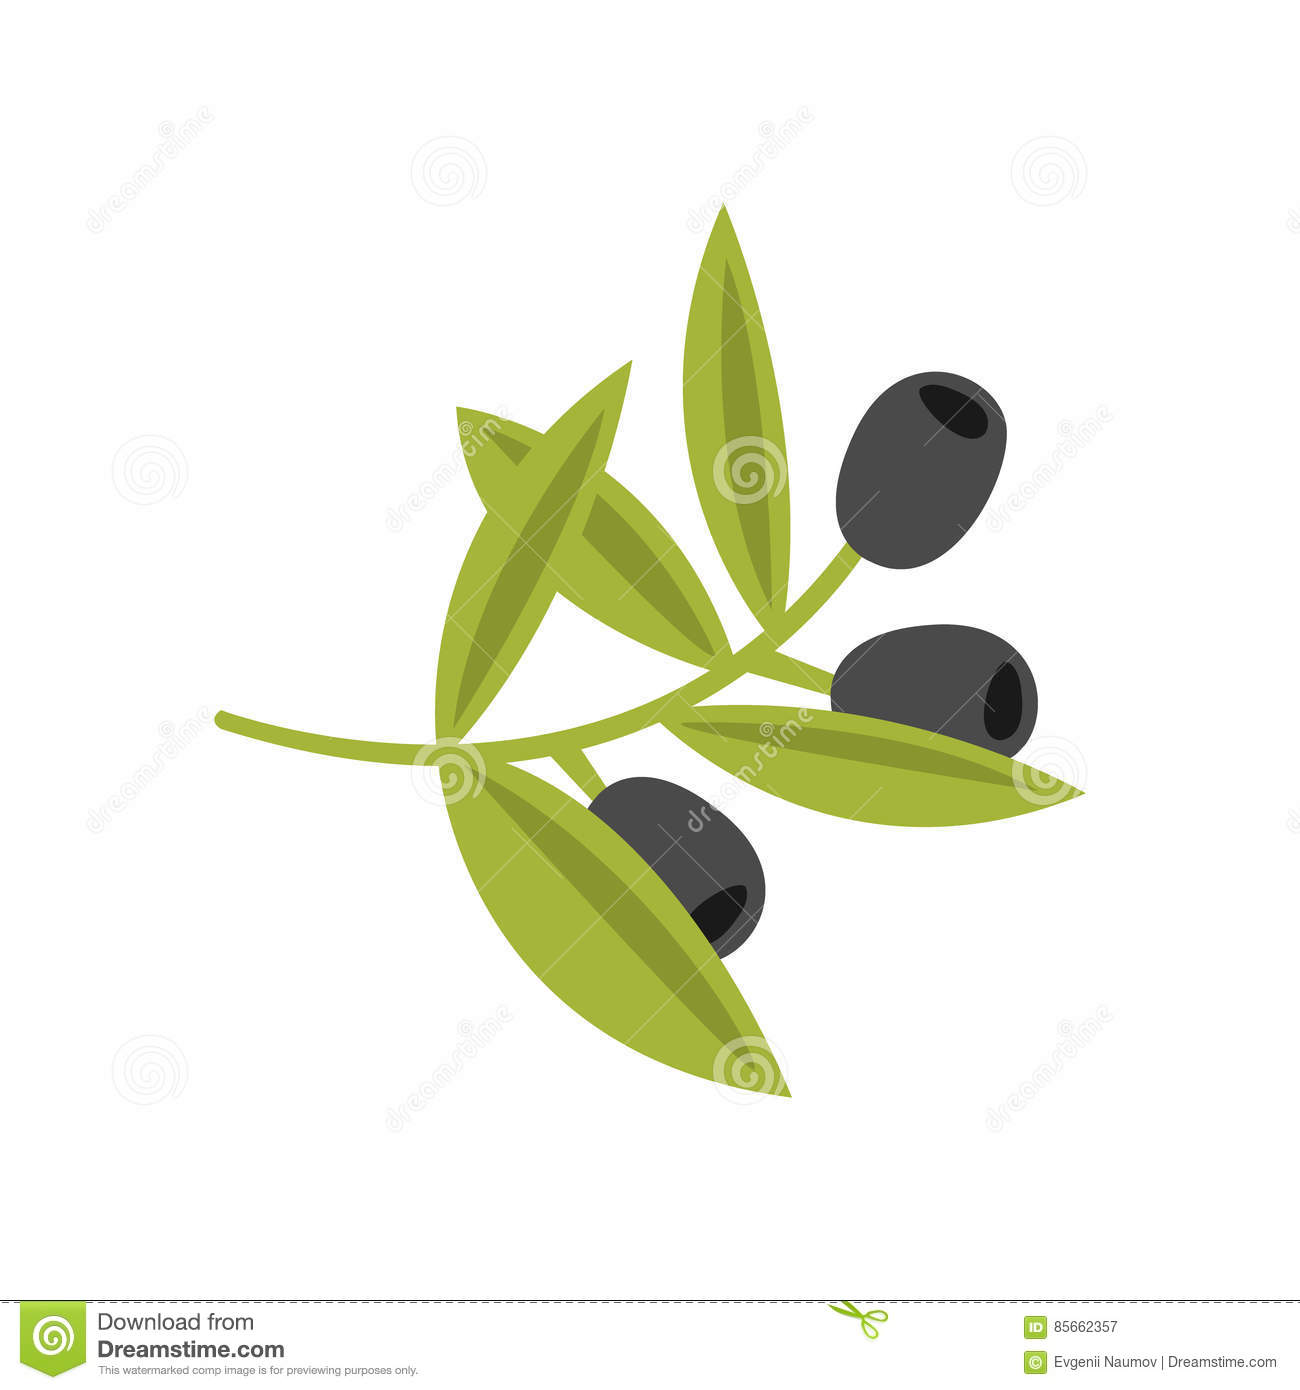 Fresh Tree Branch With Olives Primitive Cartoon Icon, Part Of Pizza Cafe Series Of Clipart Illustrations